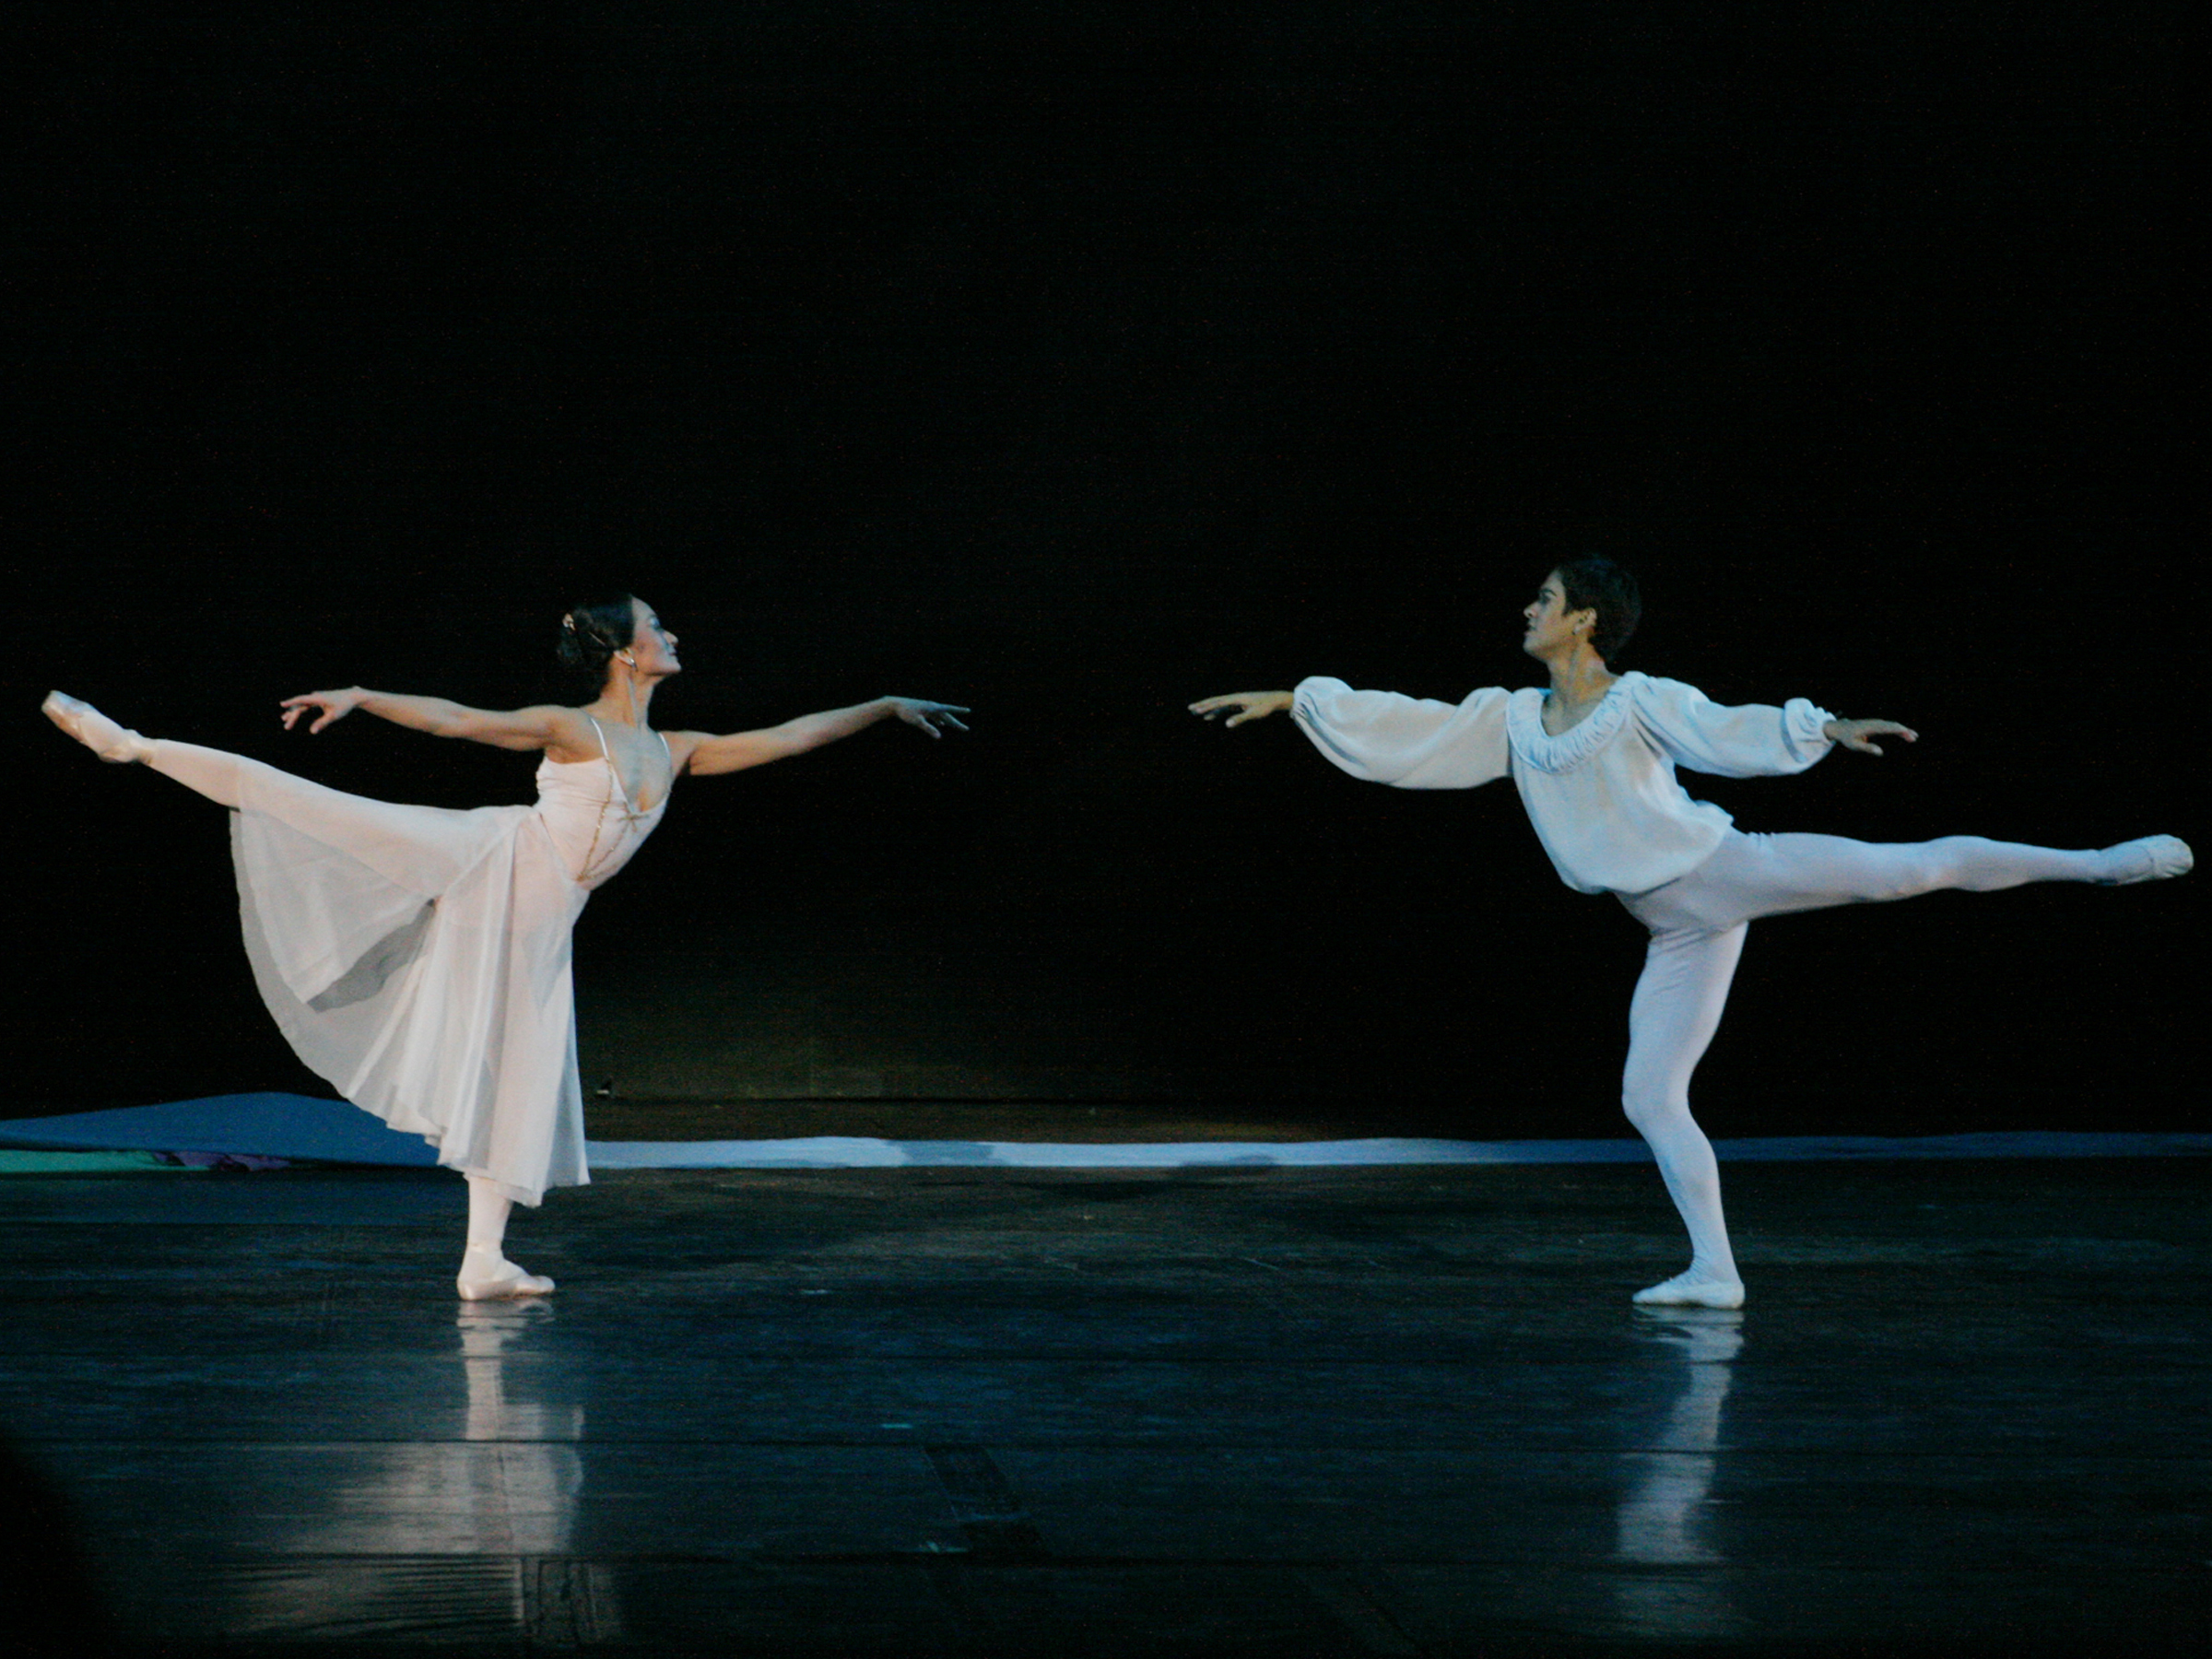 Rudy has been the Romeo to Lisa's Juliet many times. They began dancing this choreography in 2006. Photo by Ocs Alvarez.